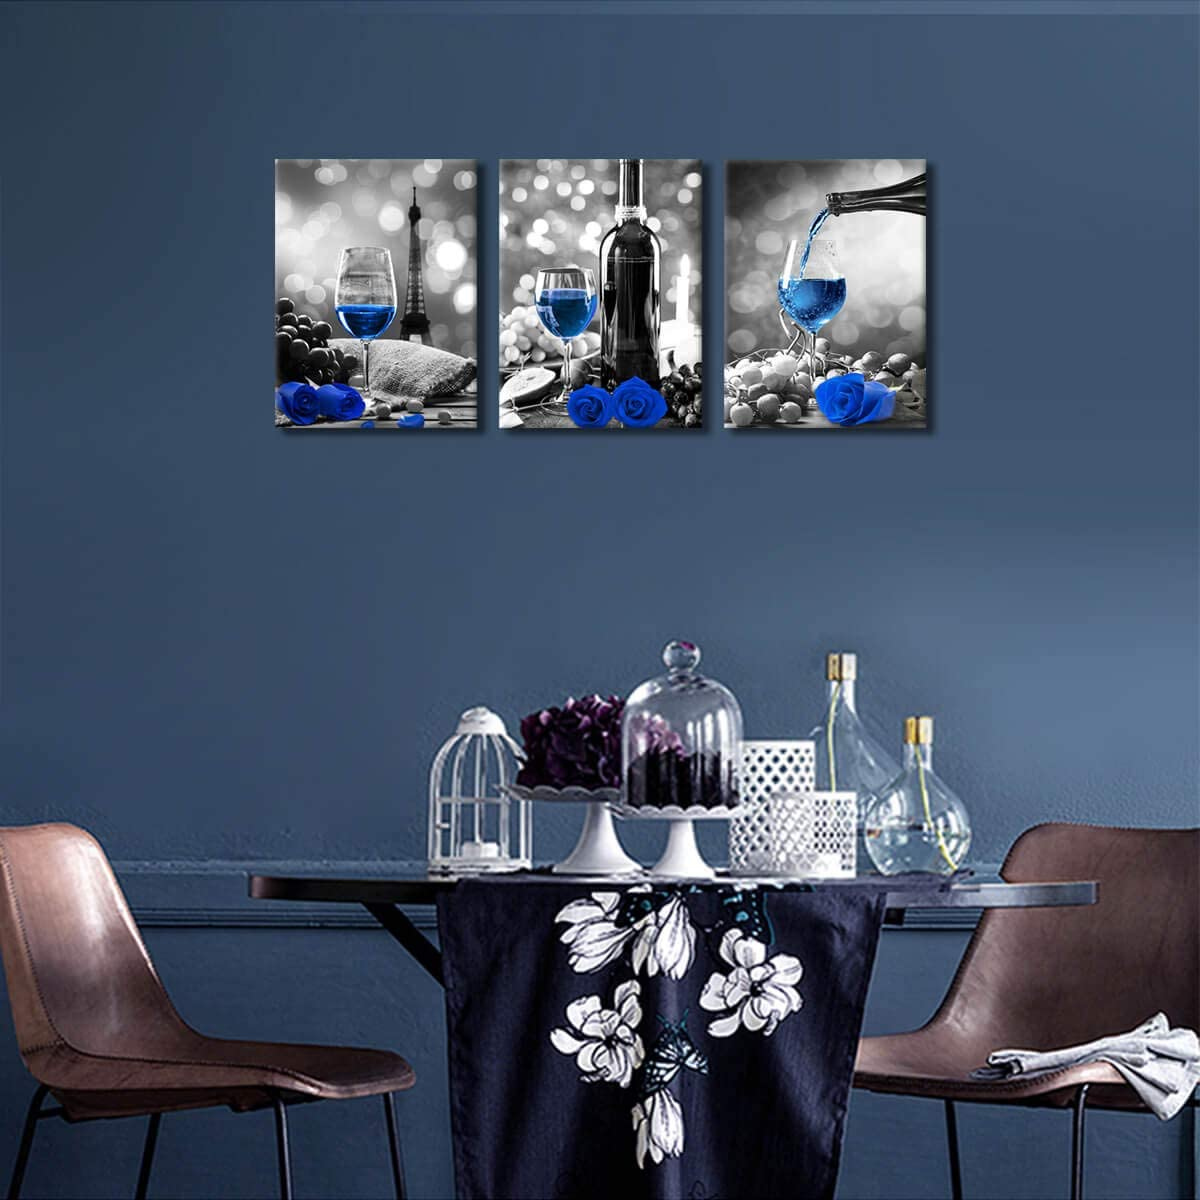 Buy Wine Decor Kitchen Canvas Art Blue Wine Rose Artwork For Home Walls Black And White With Blue Wine Painting Printed Rose Art Dining Room Decor Blue Kitchen Pictures Wall Decor Stretched